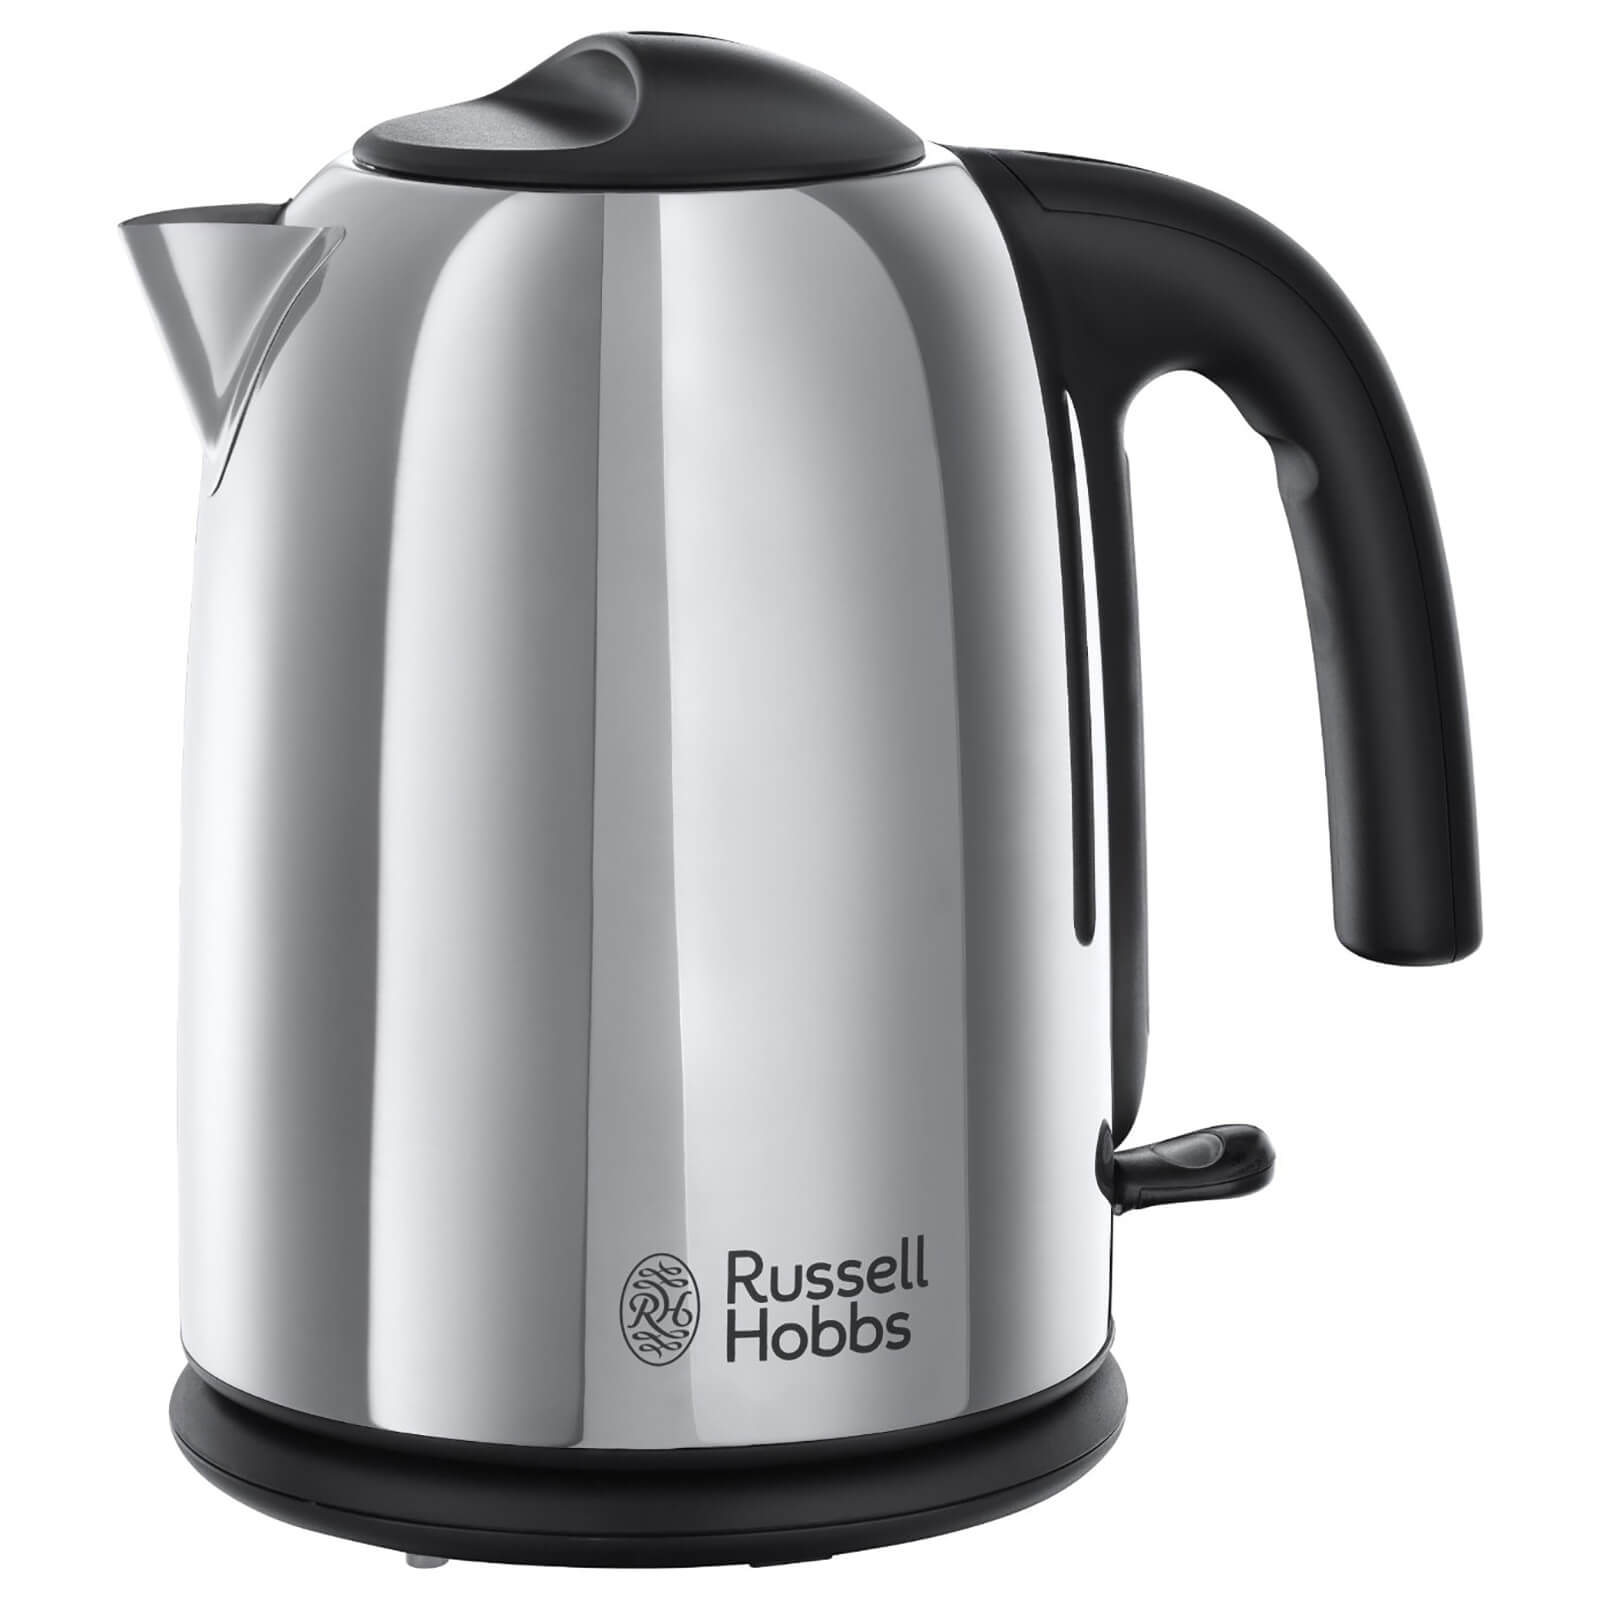 Russell Hobbs 20410 1.7L Hampshire Polished Kettle - Stainless Steel